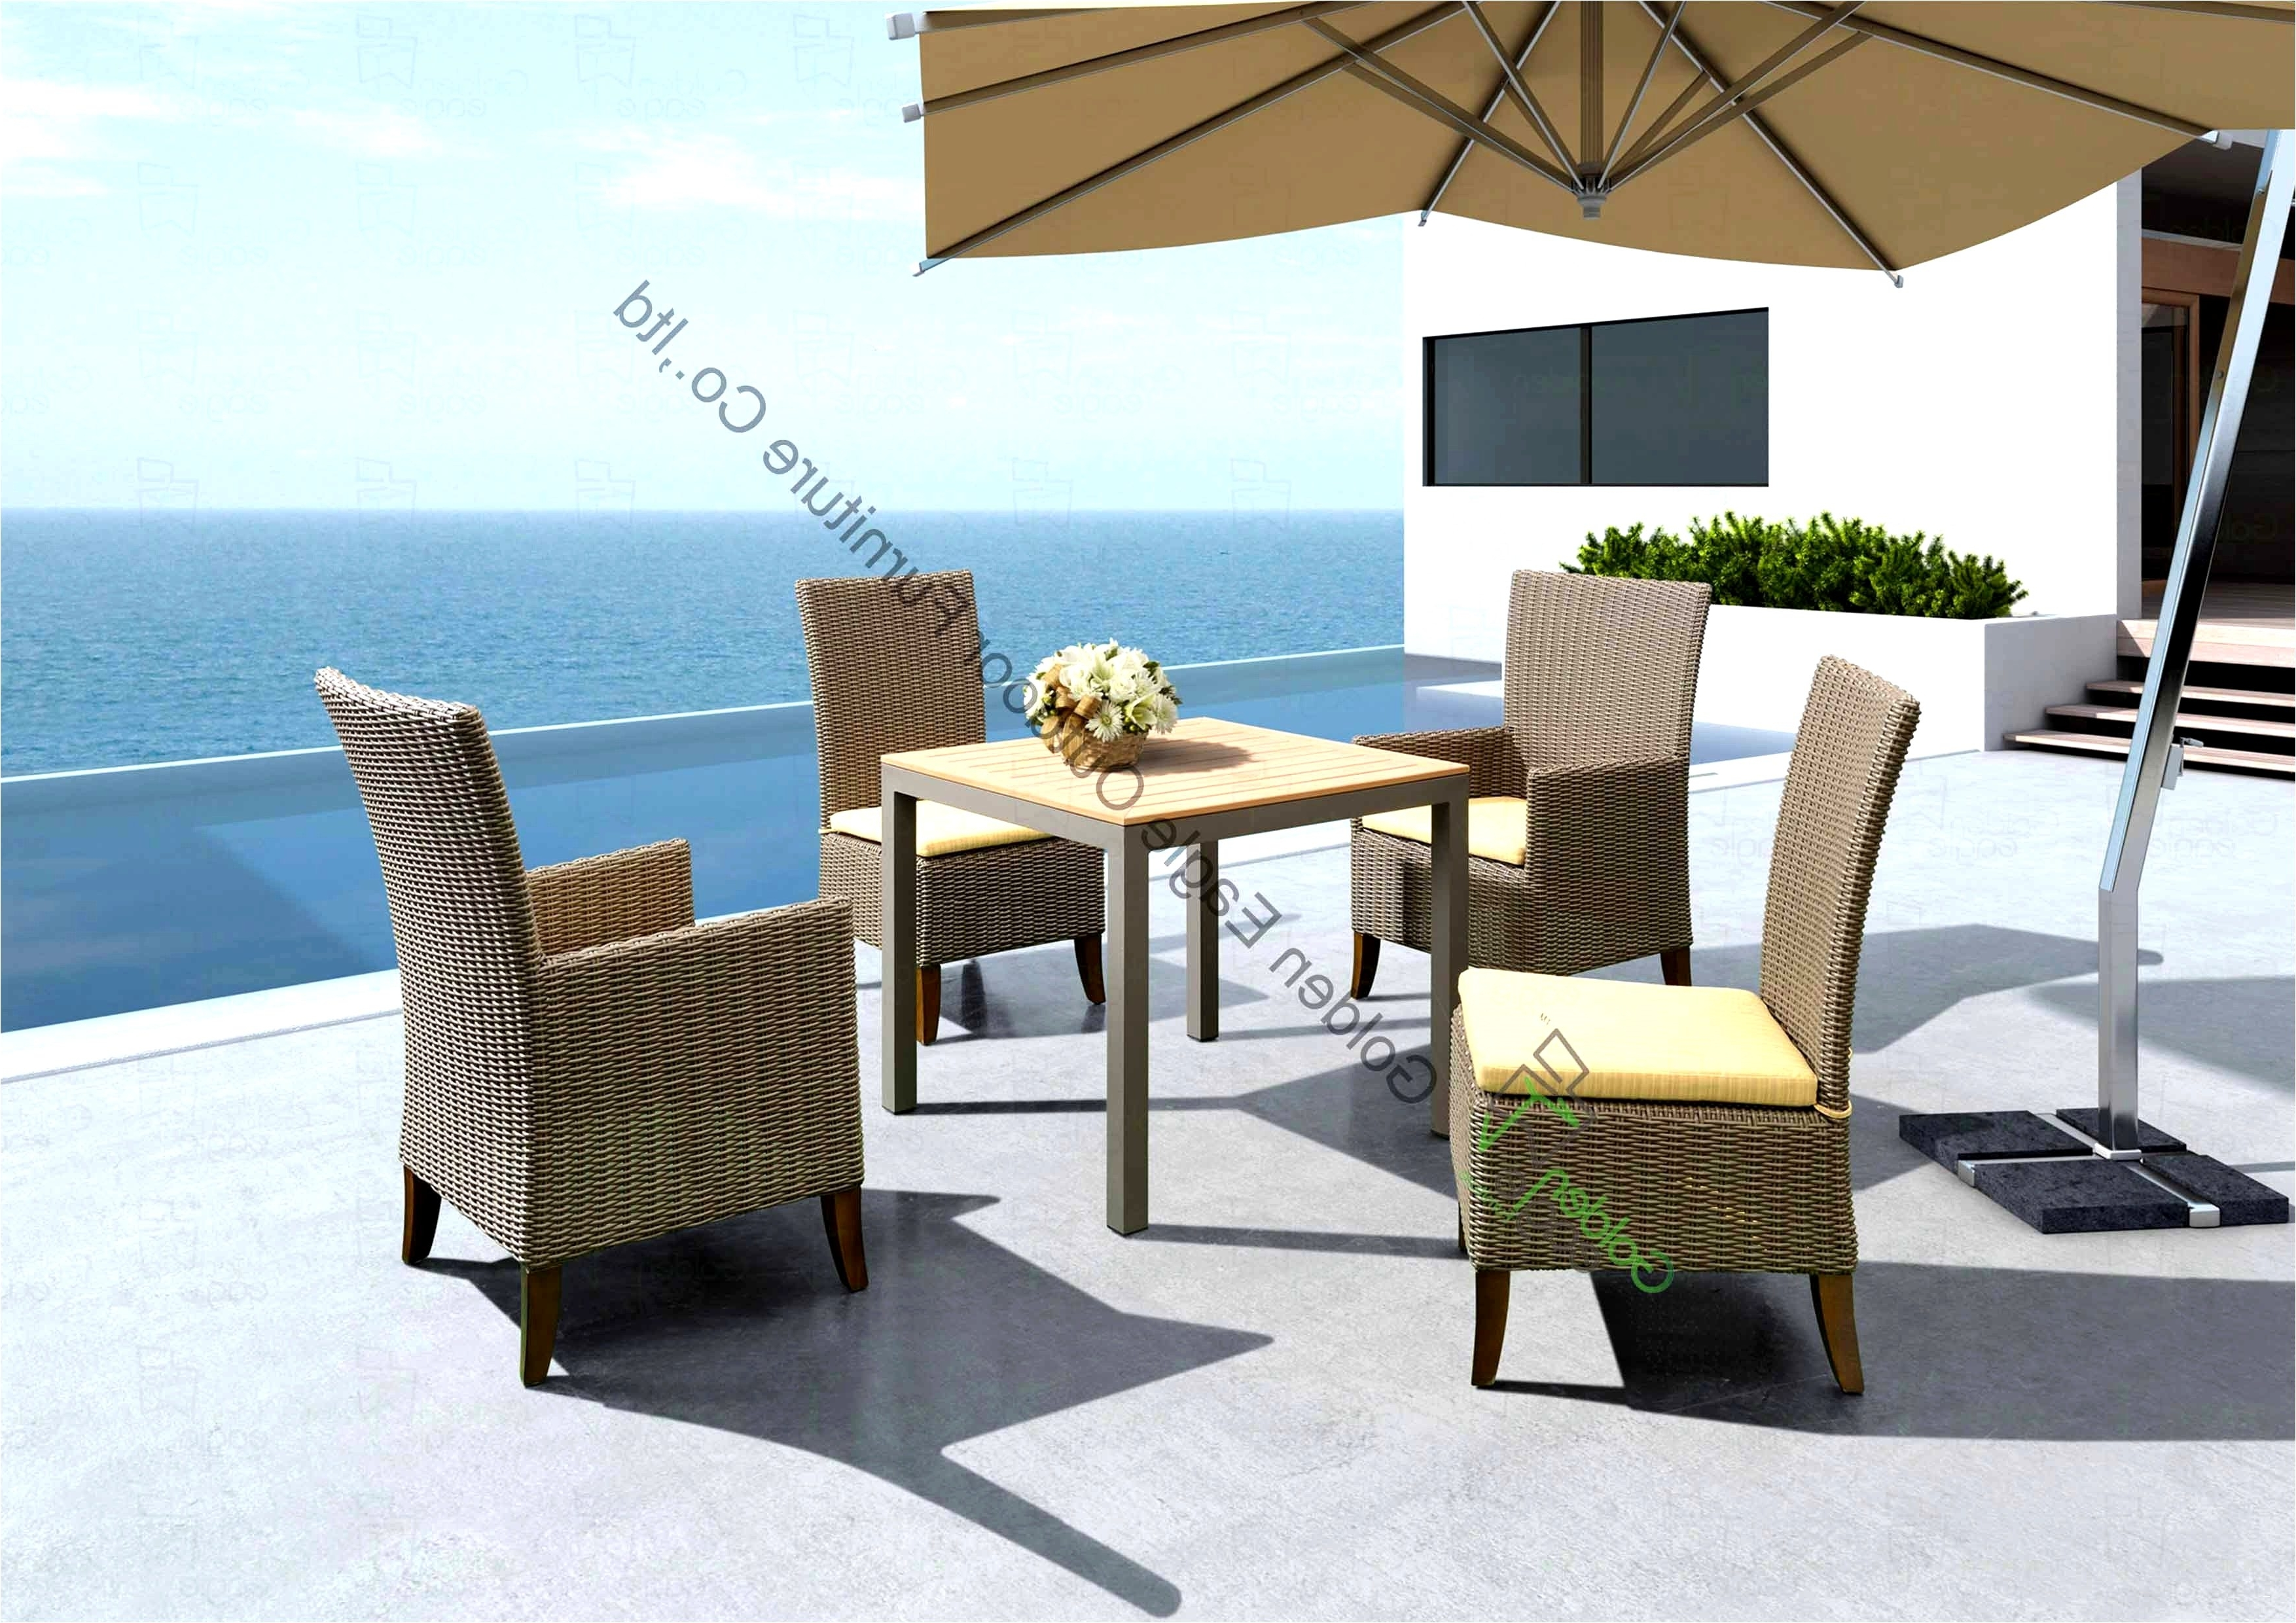 Famous High End Patio Umbrellas Throughout Patio Umbrella The Bay New High End Outdoor Furniture Beautiful Wood (View 8 of 20)